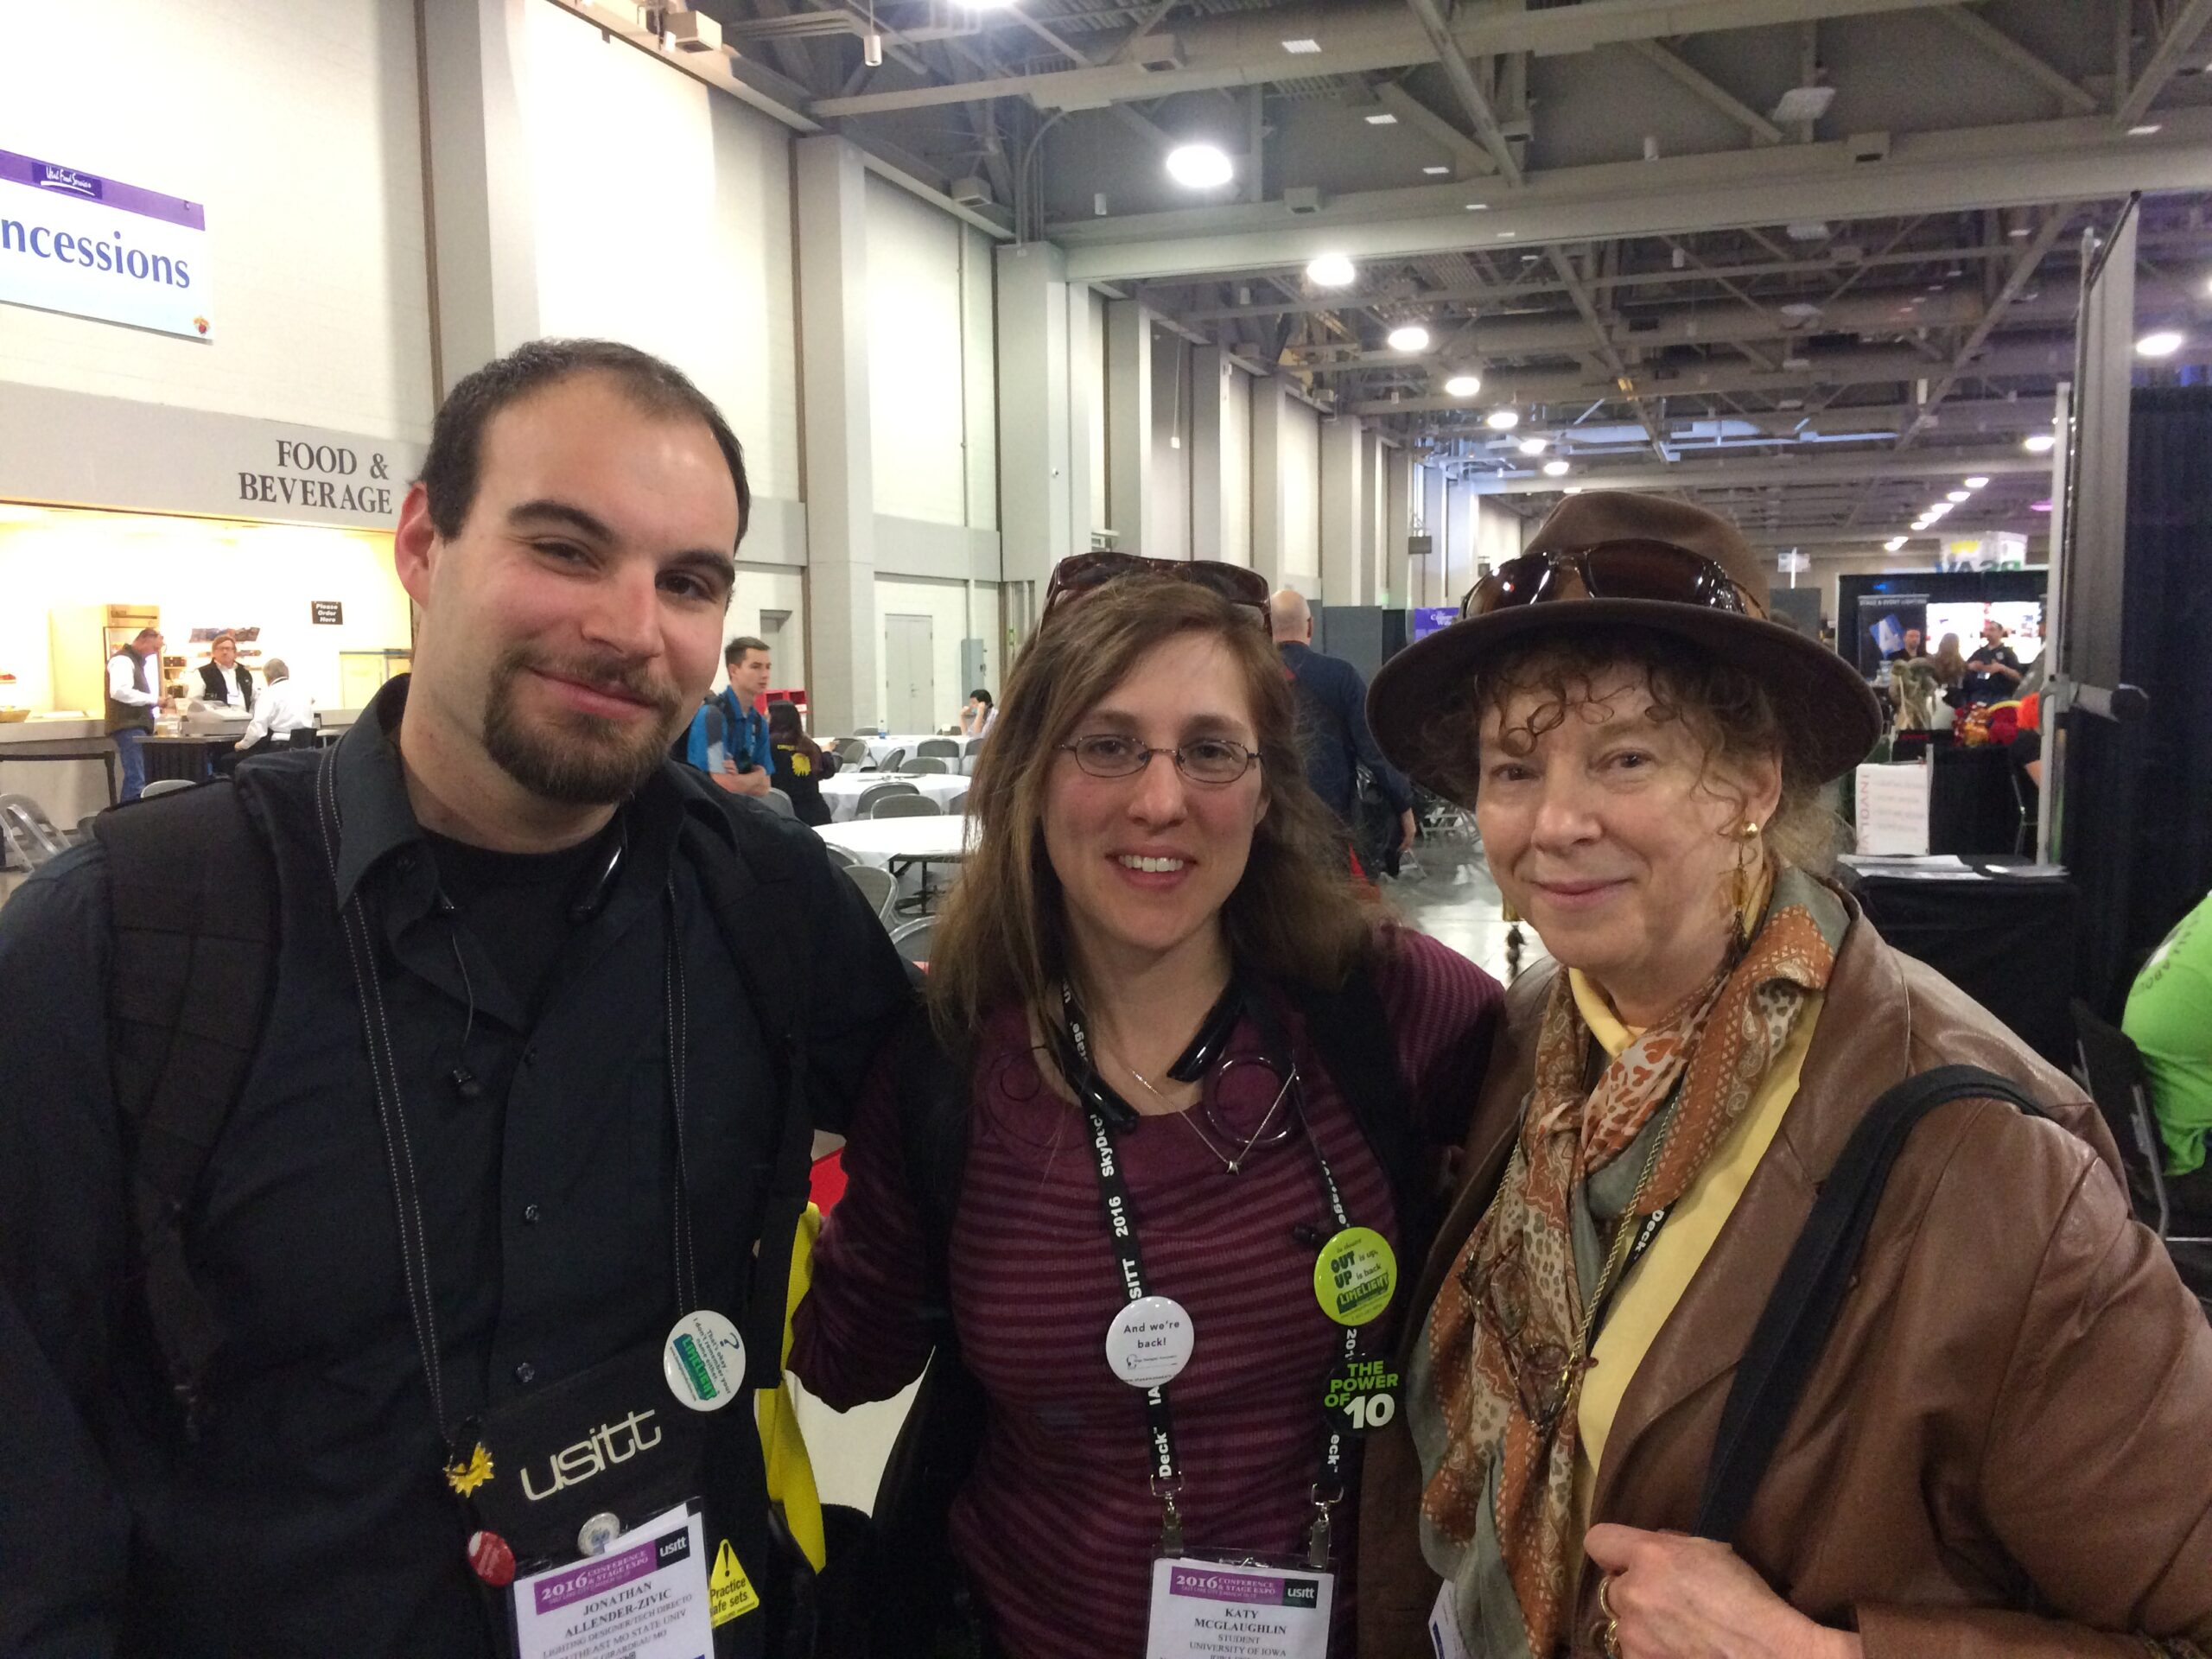 Author attending USITT with Jonathan Allender-Zivic (left) and Stephanie Schoelzel (right)